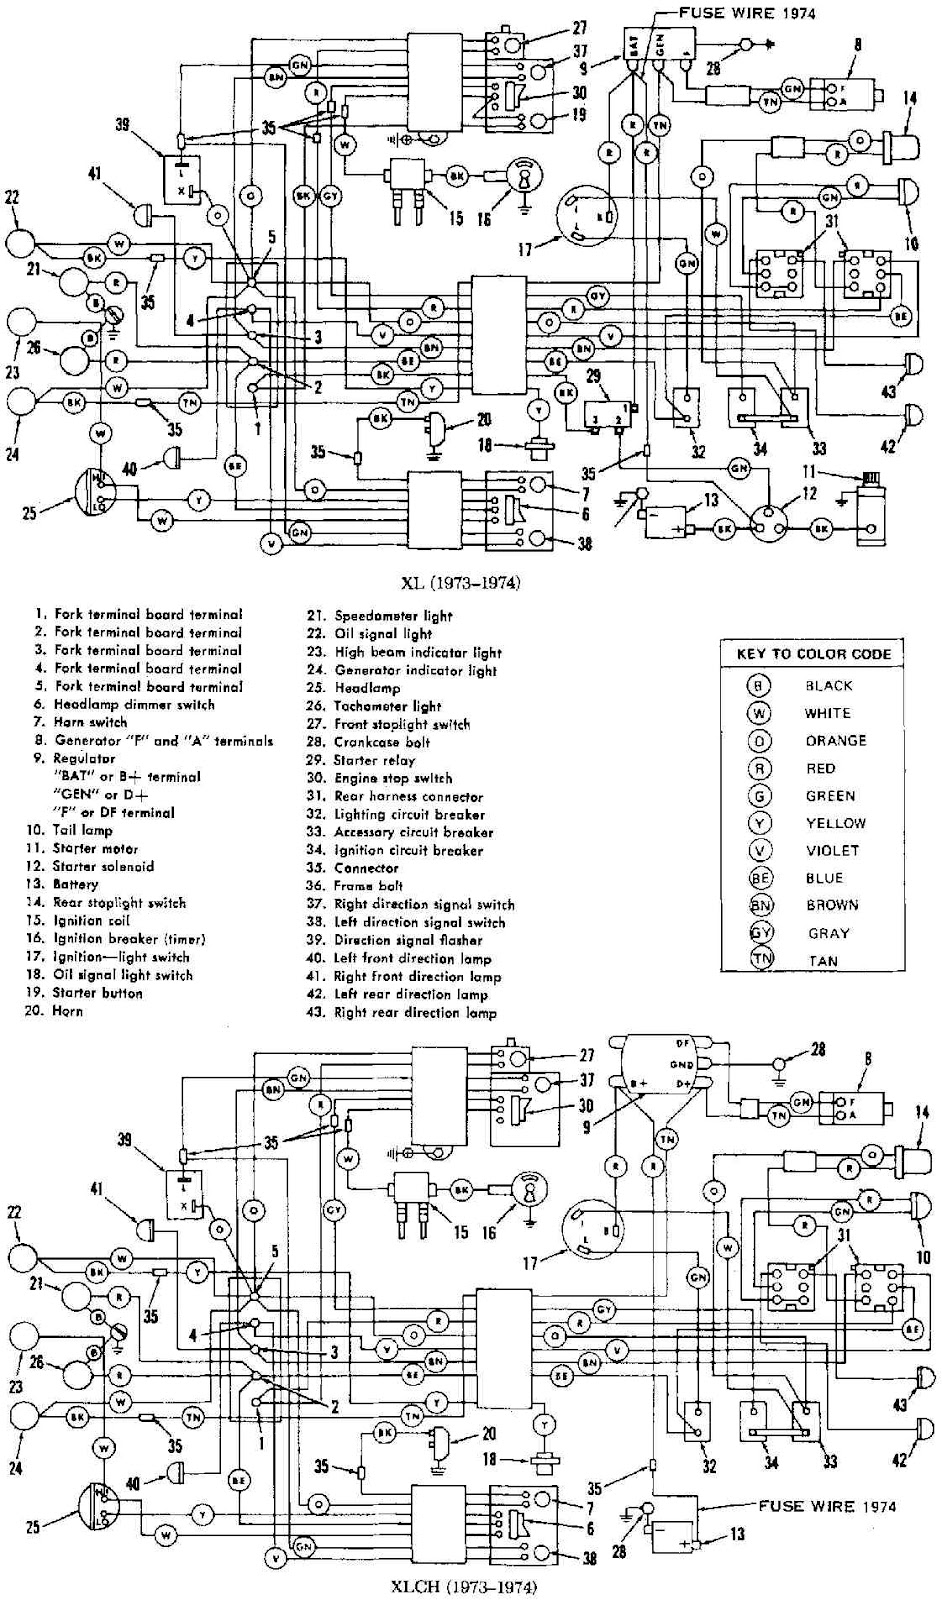 Harley Davidson XLXLCH 19731974 Motorcycle Electrical Wiring Diagram | All about Wiring Diagrams